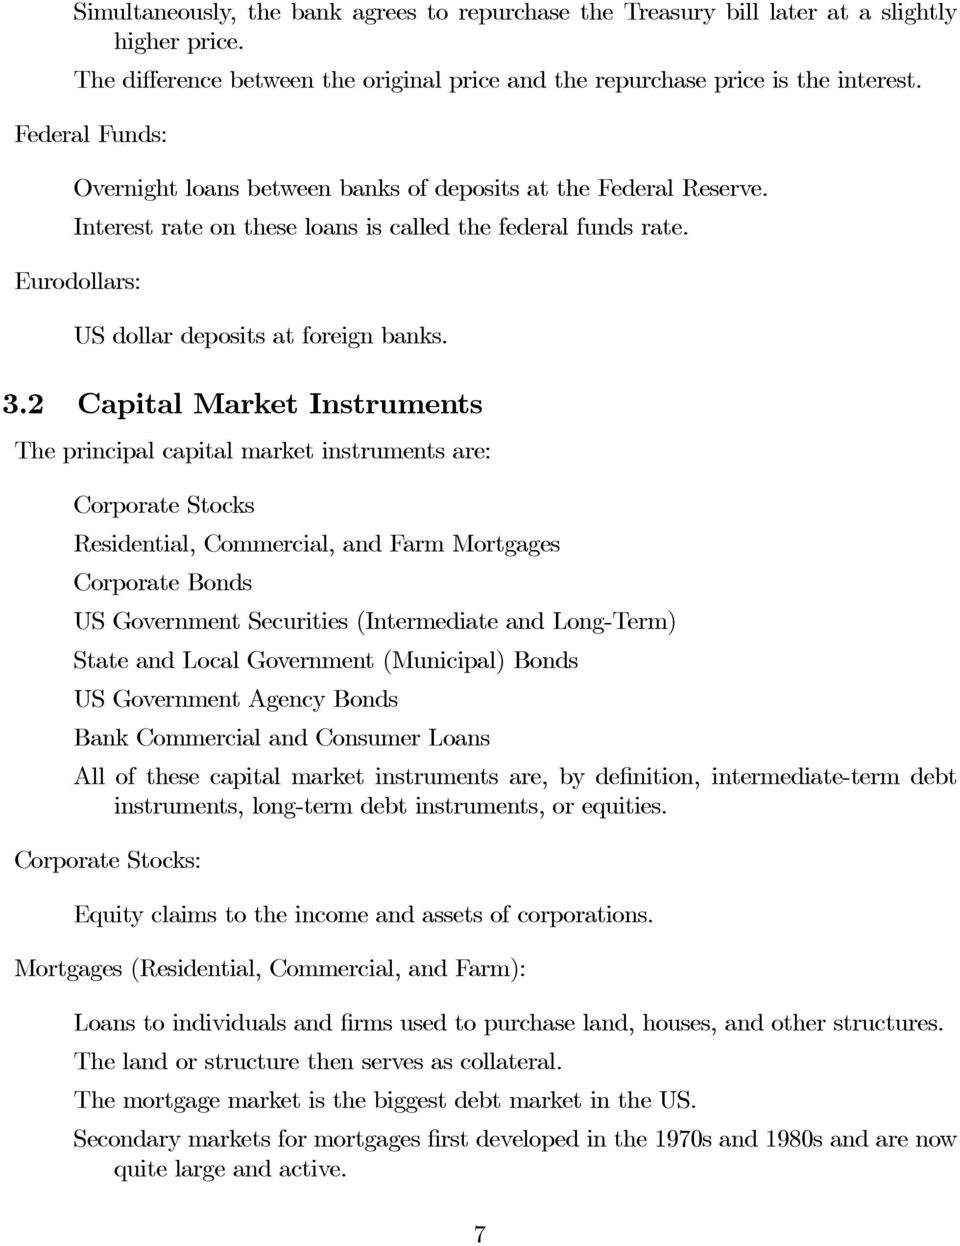 2 Capital Market Instruments The principal capital market instruments are: Corporate Stocks Residential, Commercial, and Farm Mortgages Corporate Bonds US Government Securities (Intermediate and